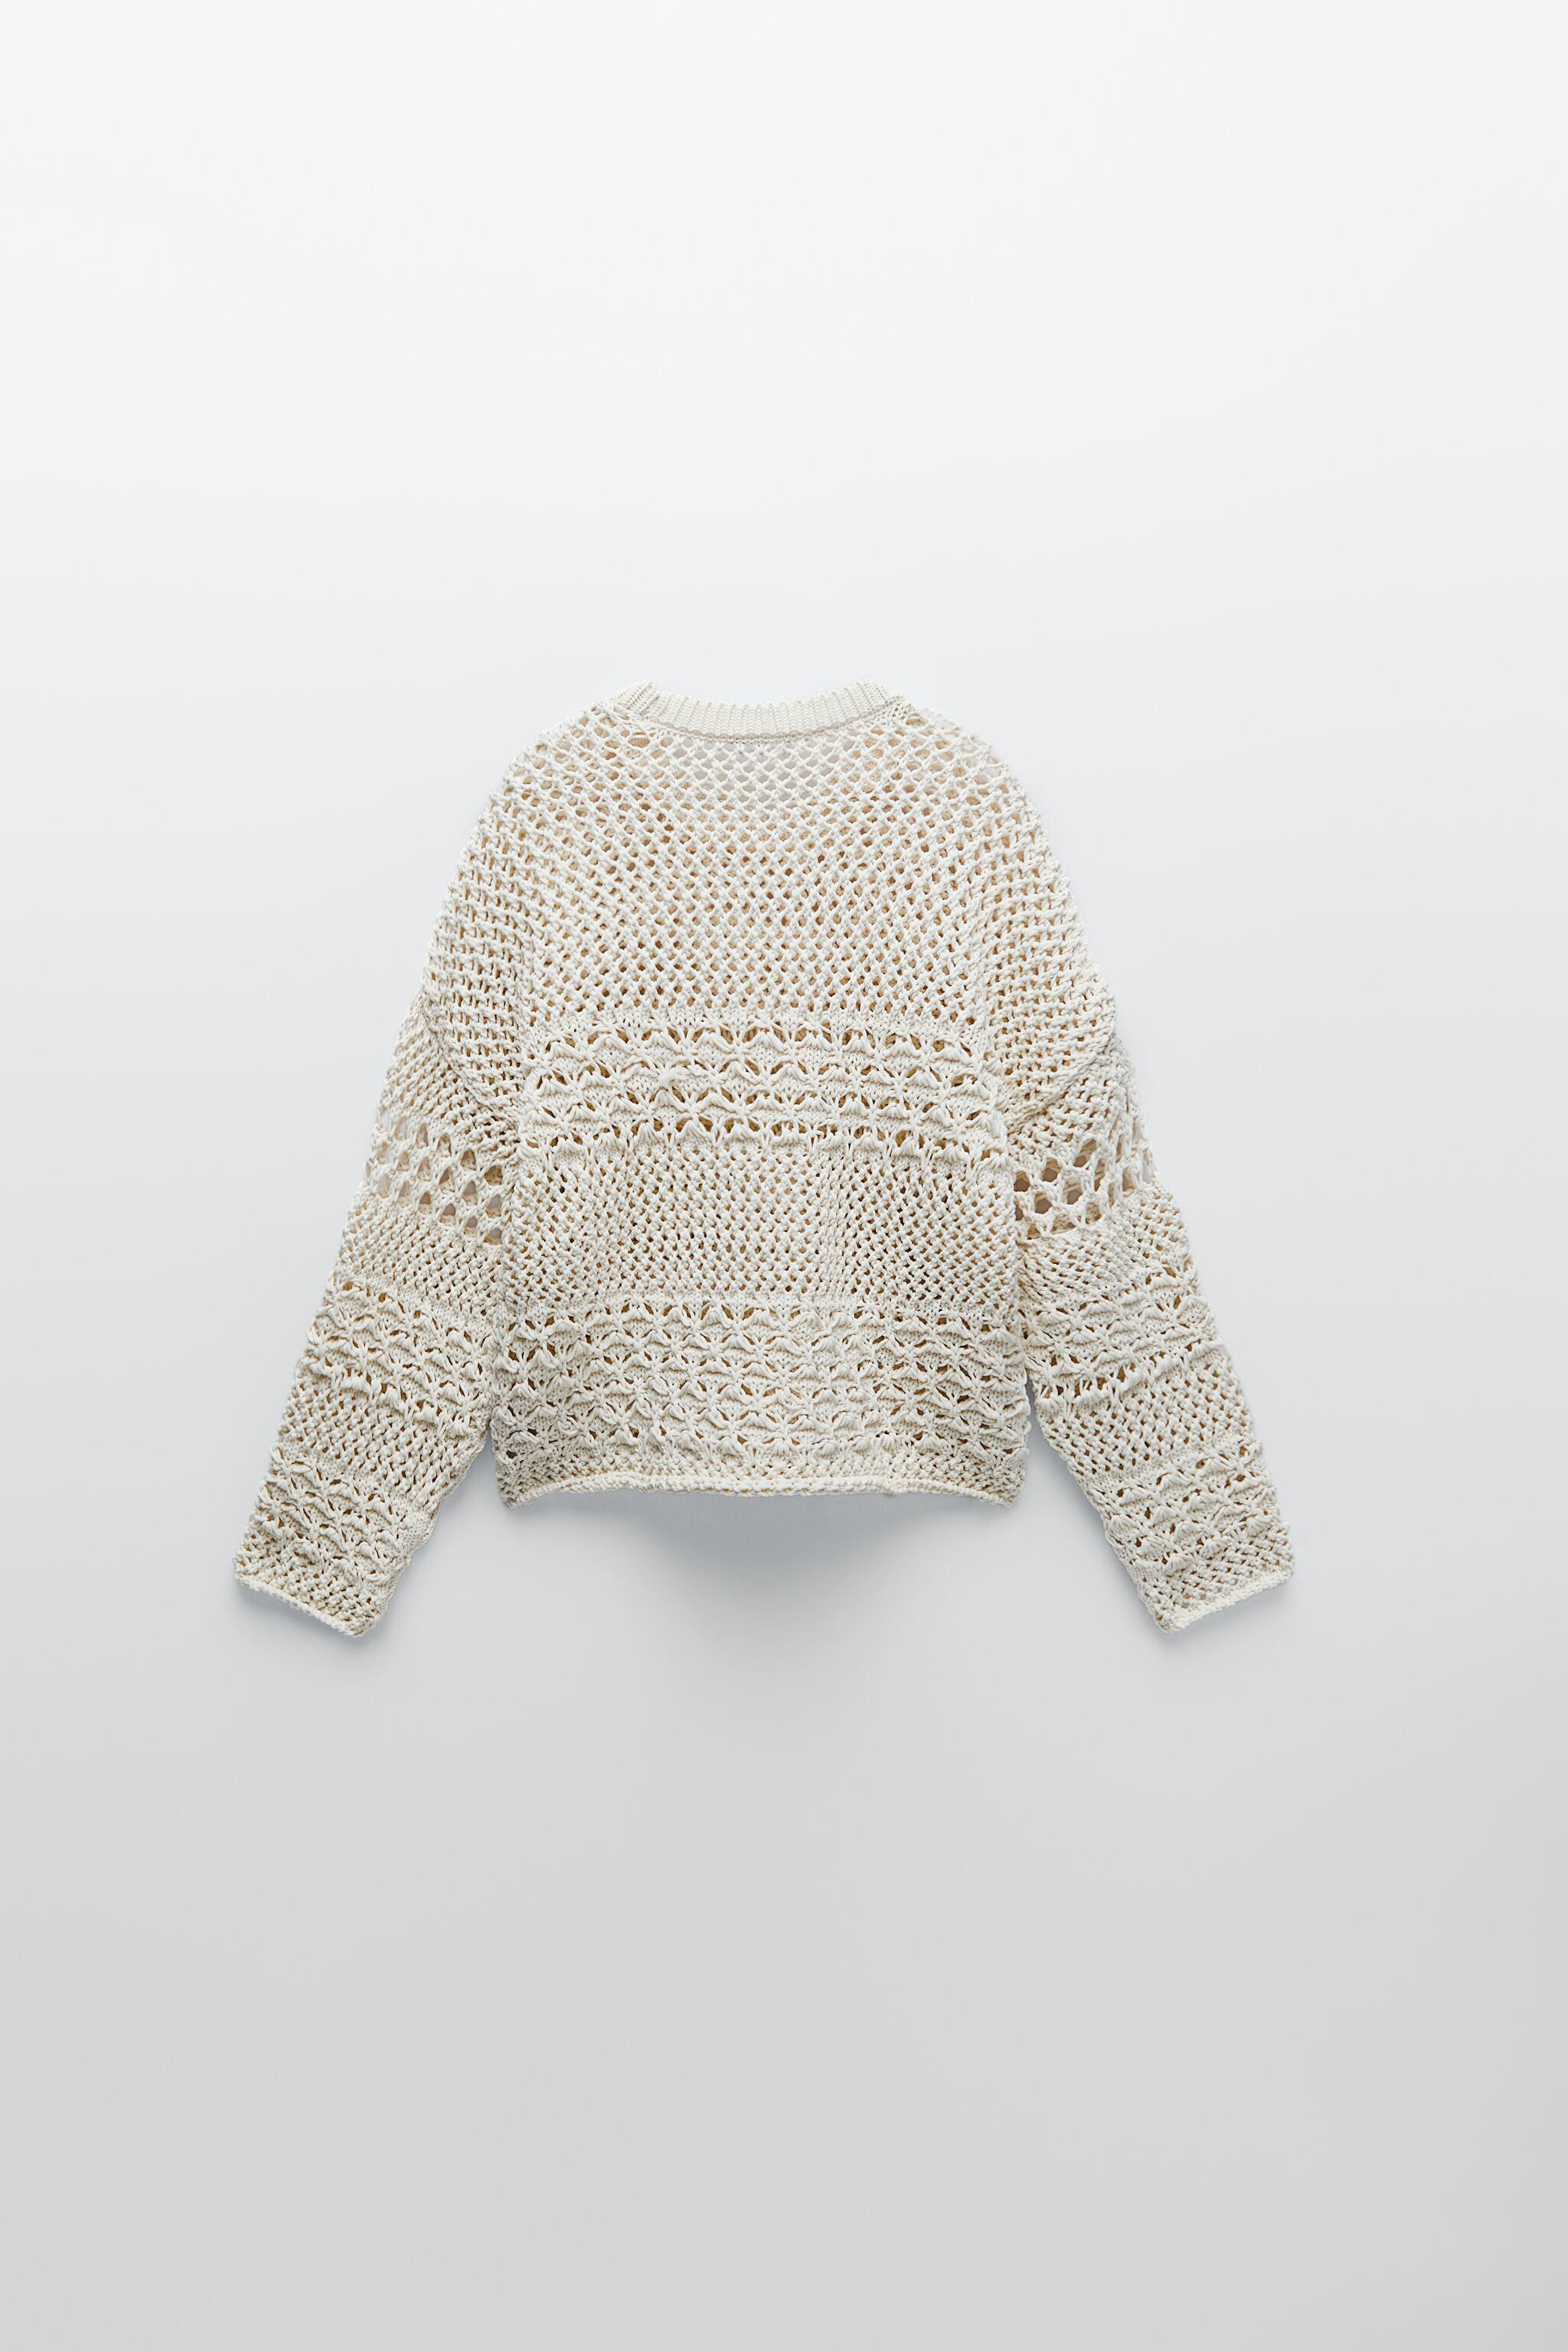 TEXTURED KNIT SWEATER 4